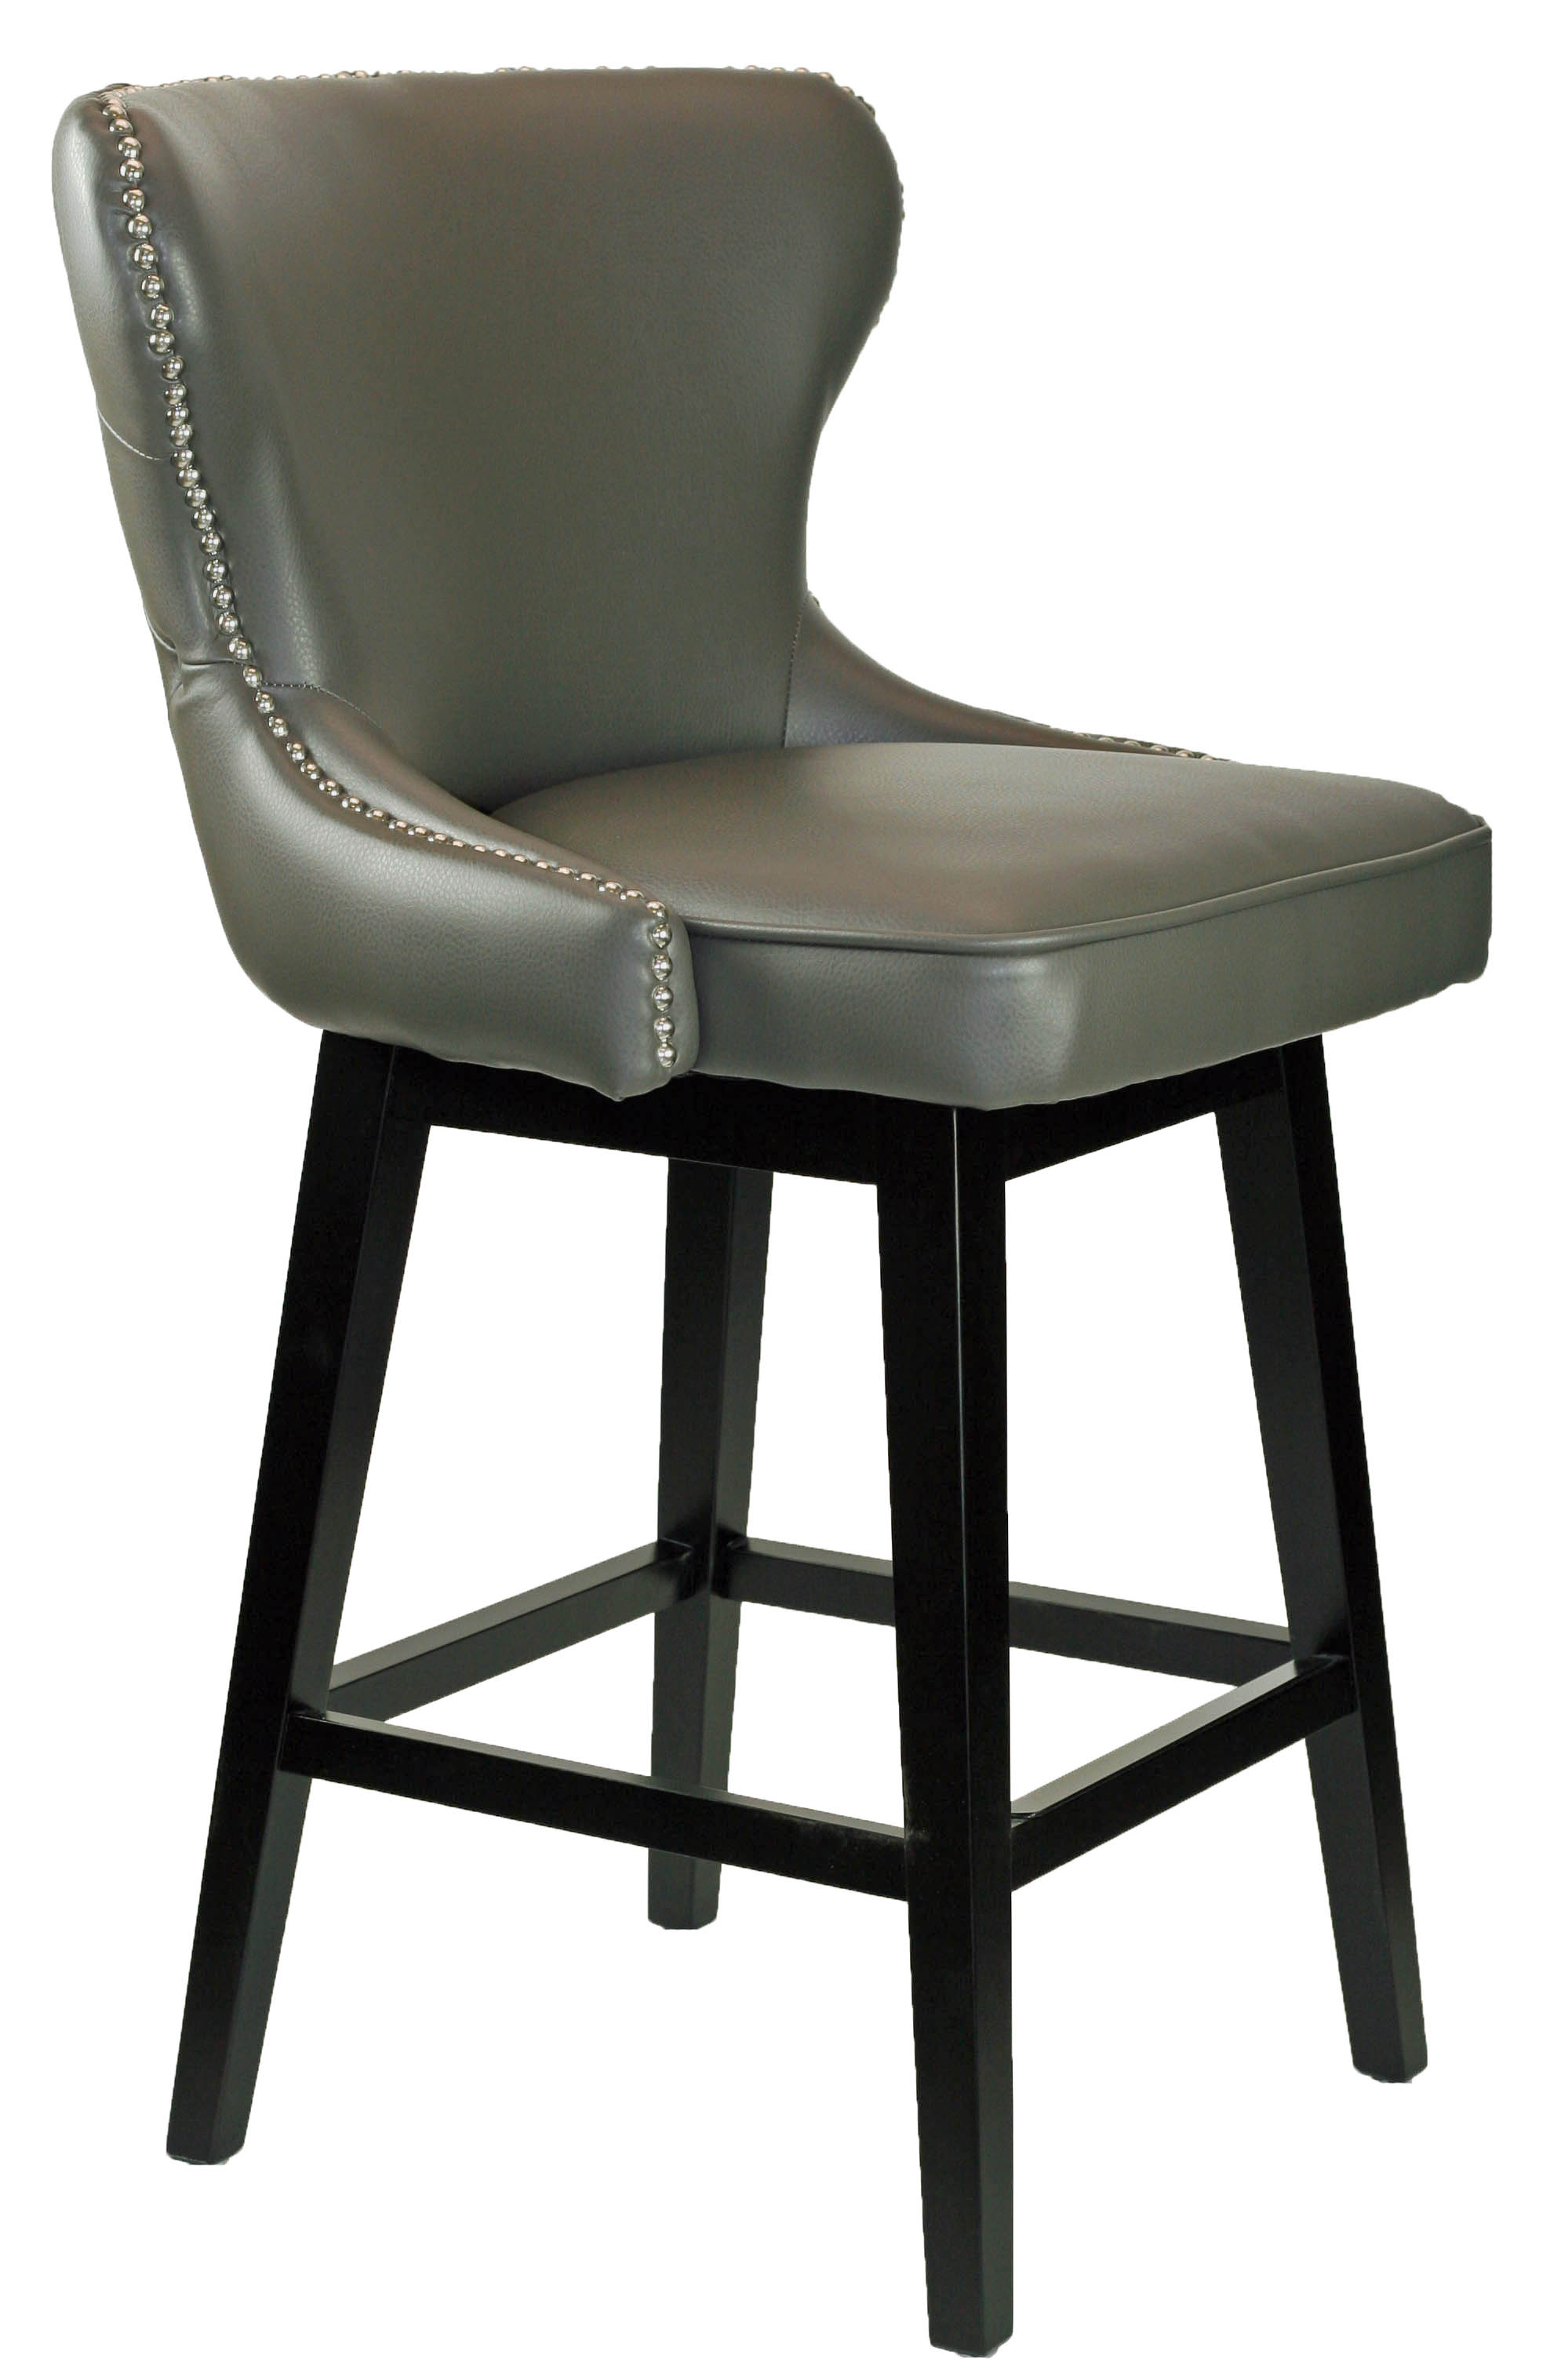 Stupendous Leather Swivel Counter Stools Uwap Interior Chair Design Uwaporg